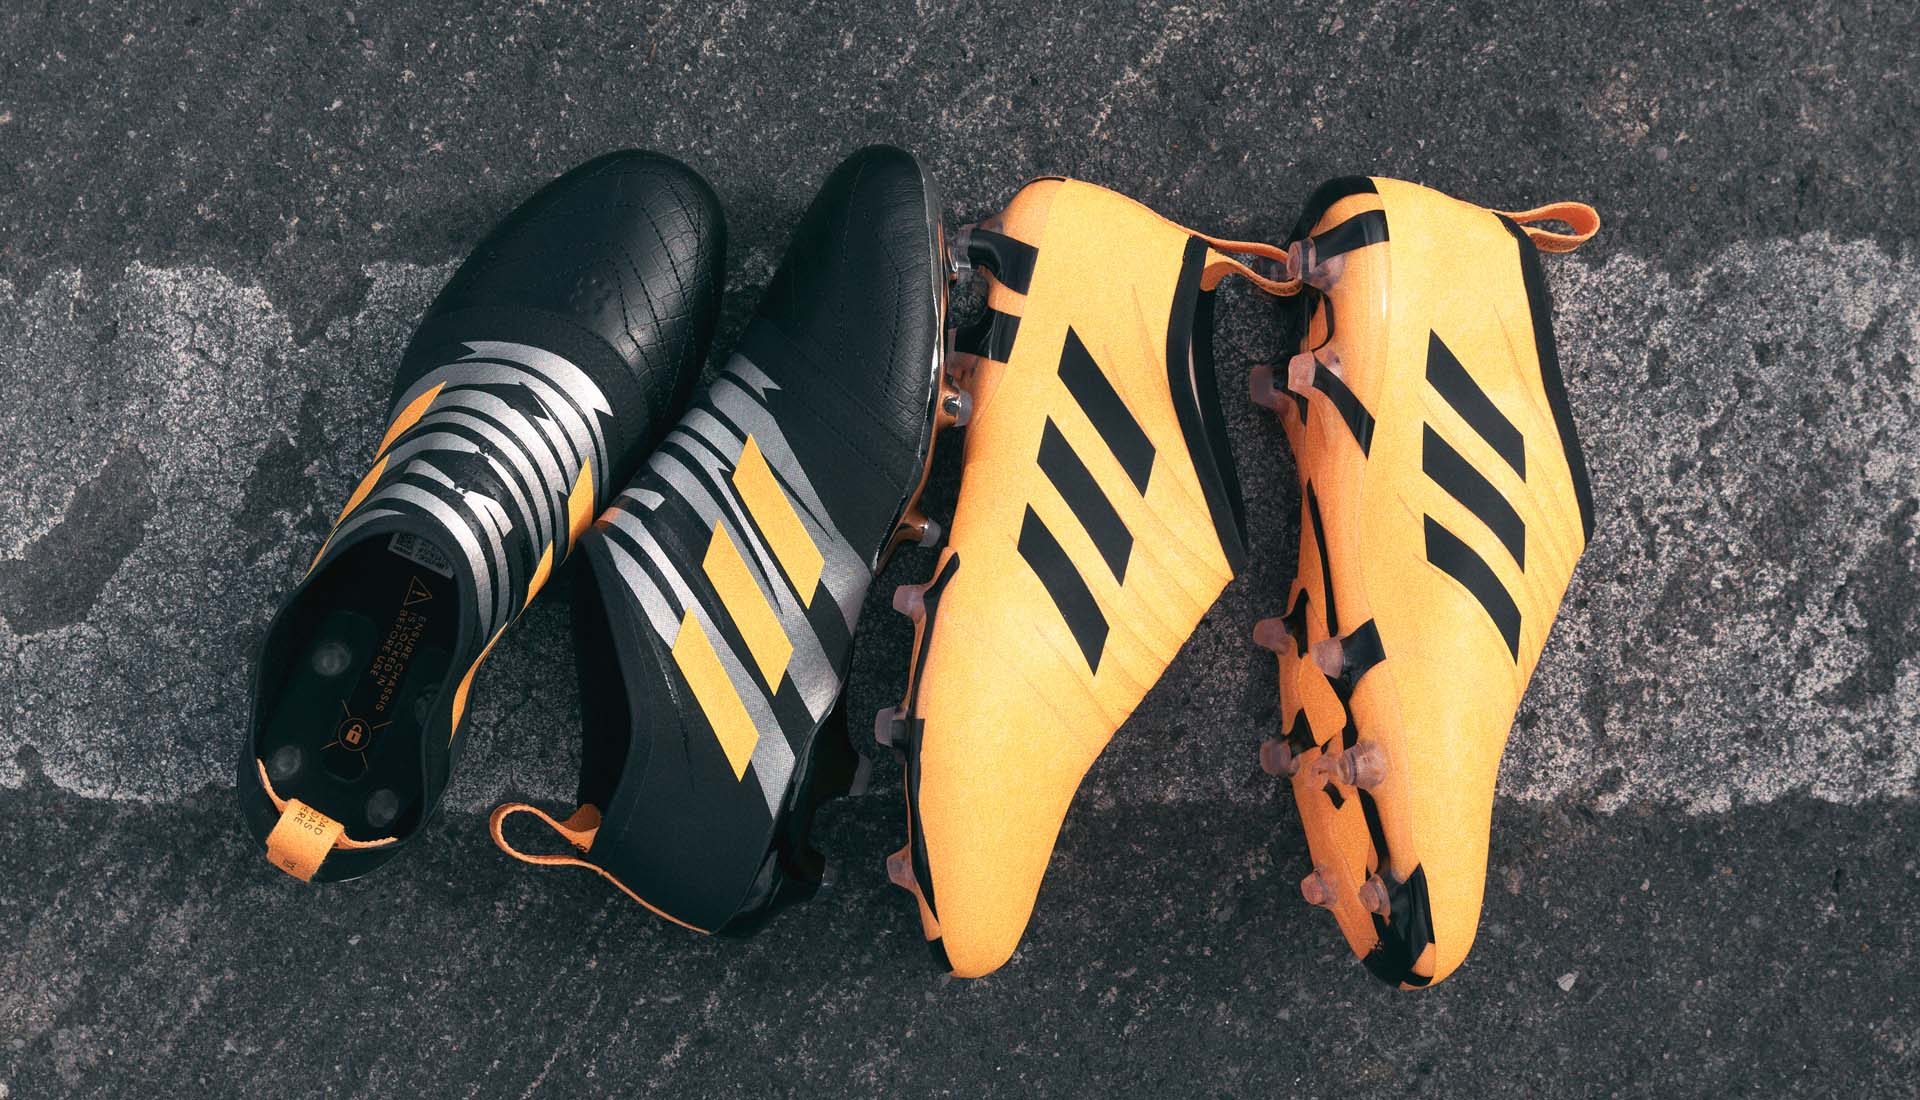 Adidas Glitch 18 Sol Boots Pack Released | Futbolgrid